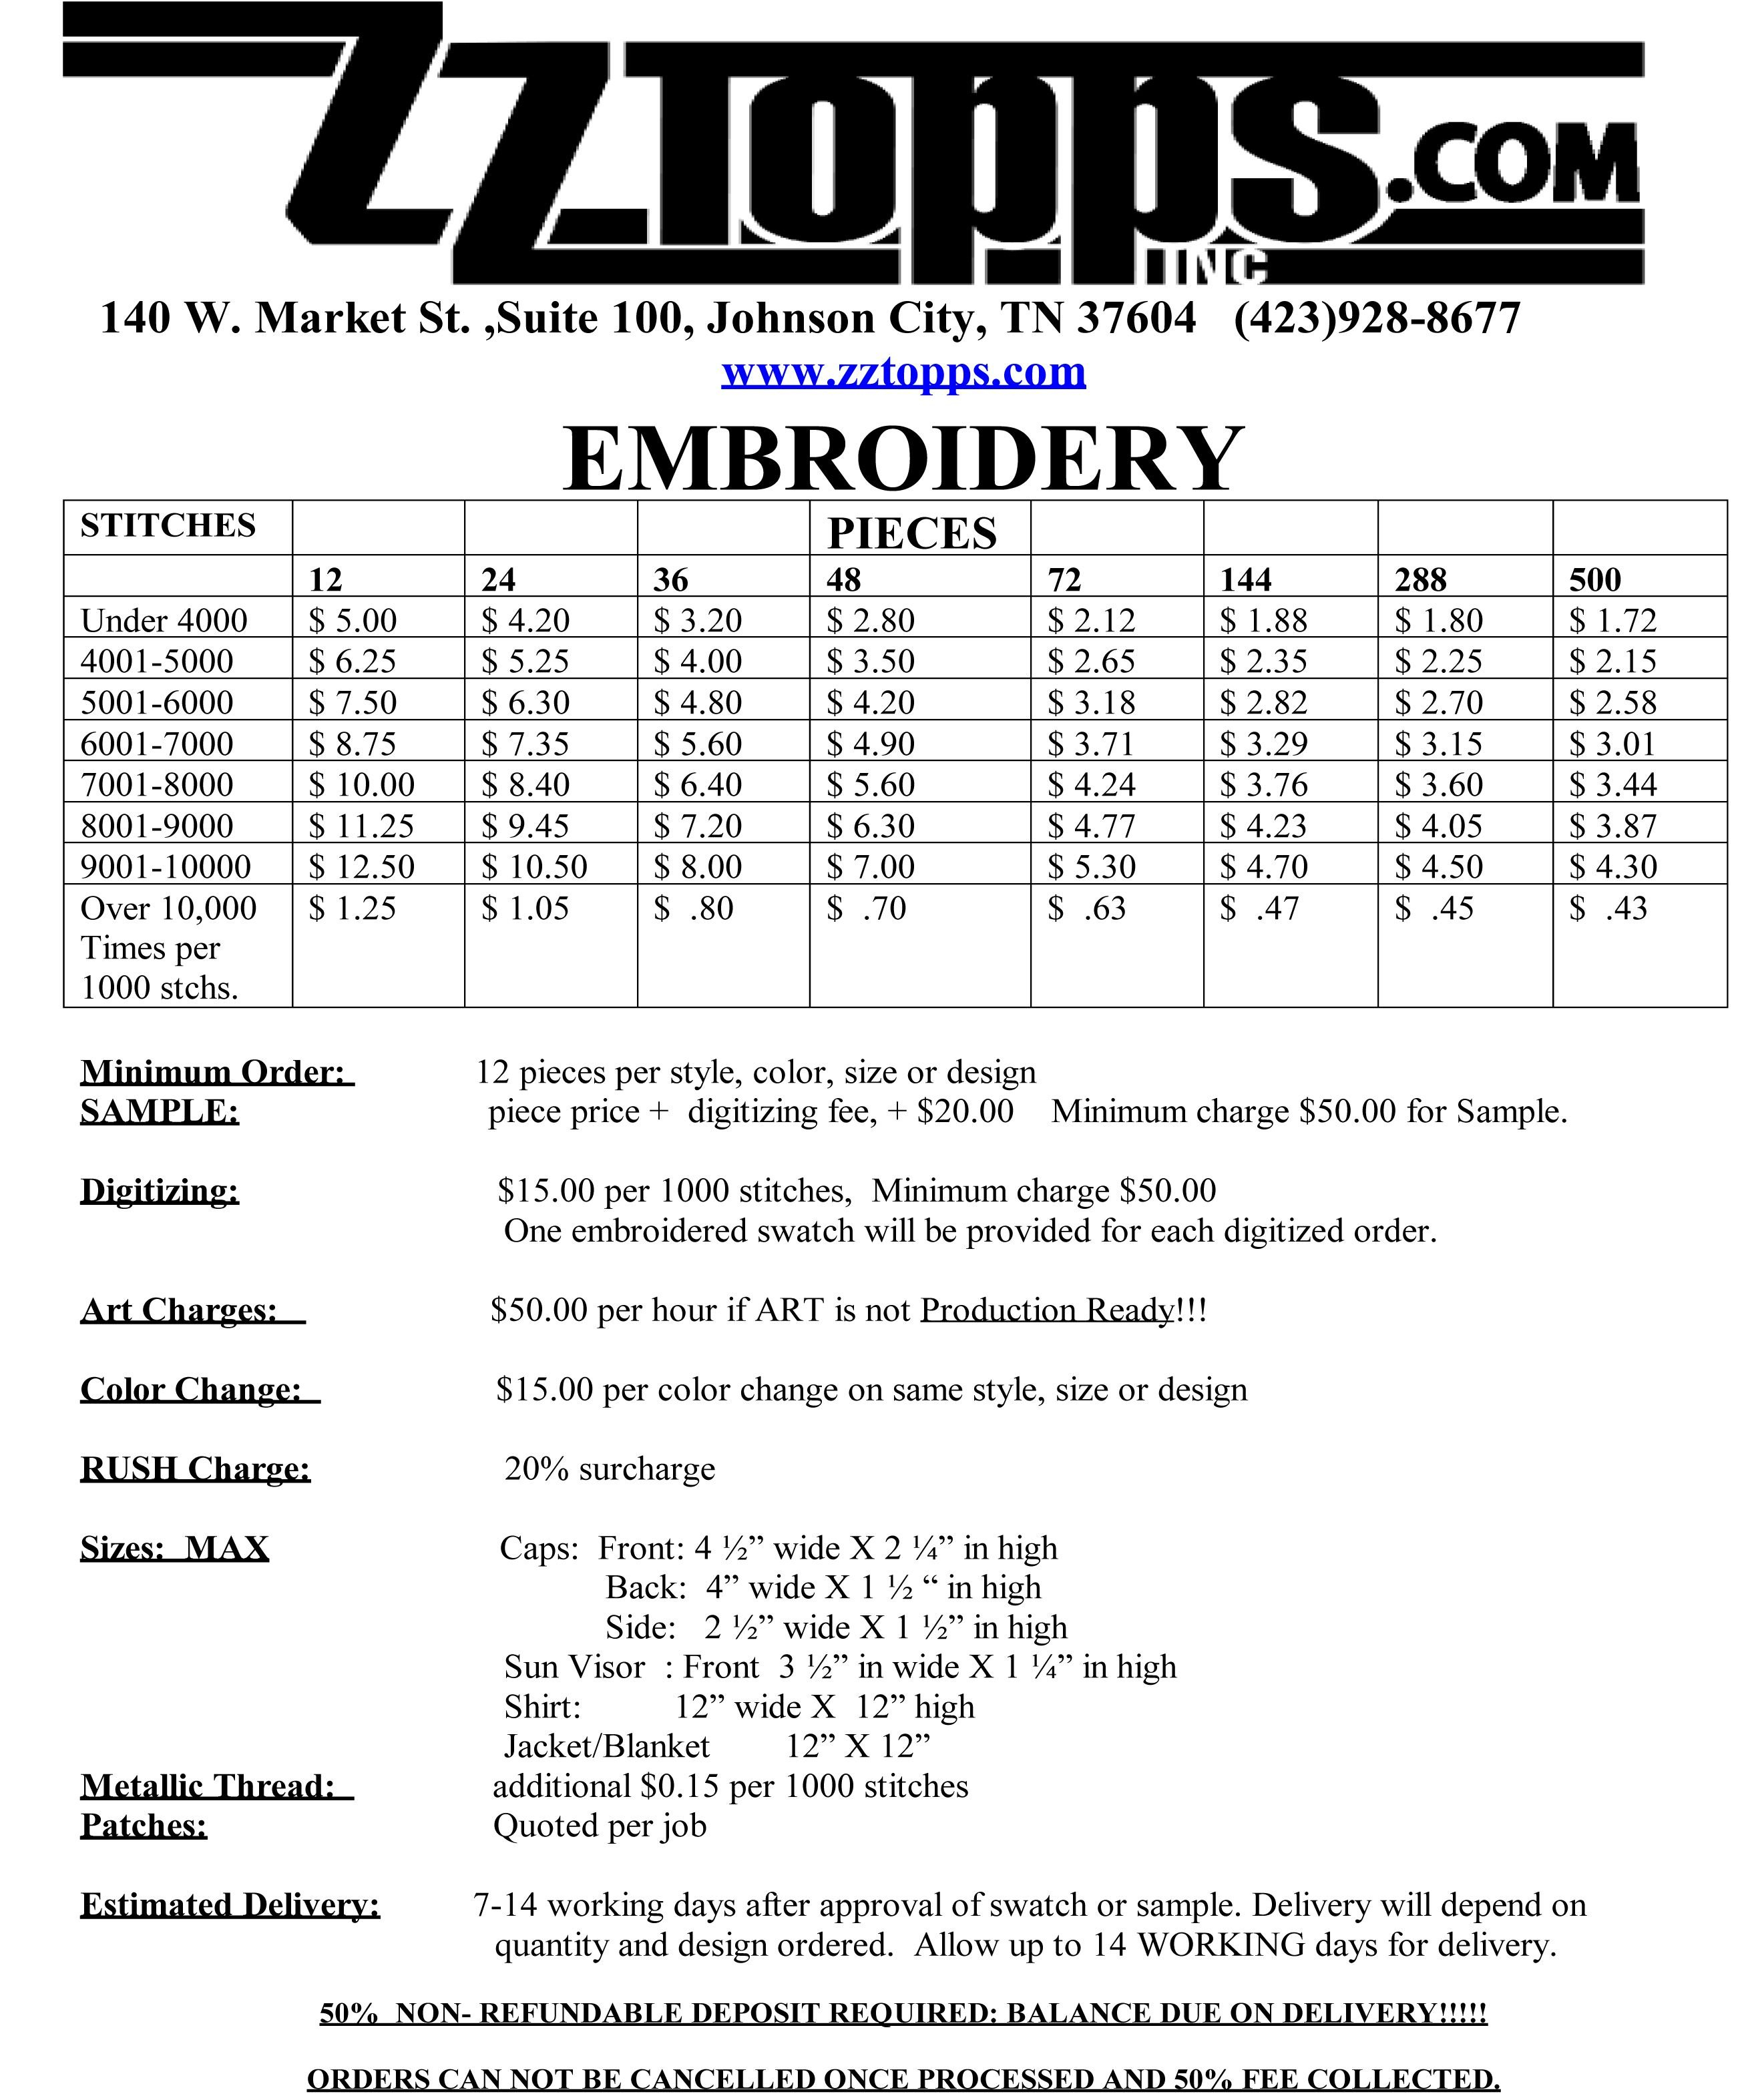 Embroidery Order Form | Embroidery Order Forms   Embroidery Order ... Regarding Embroidery Pricing Spreadsheet